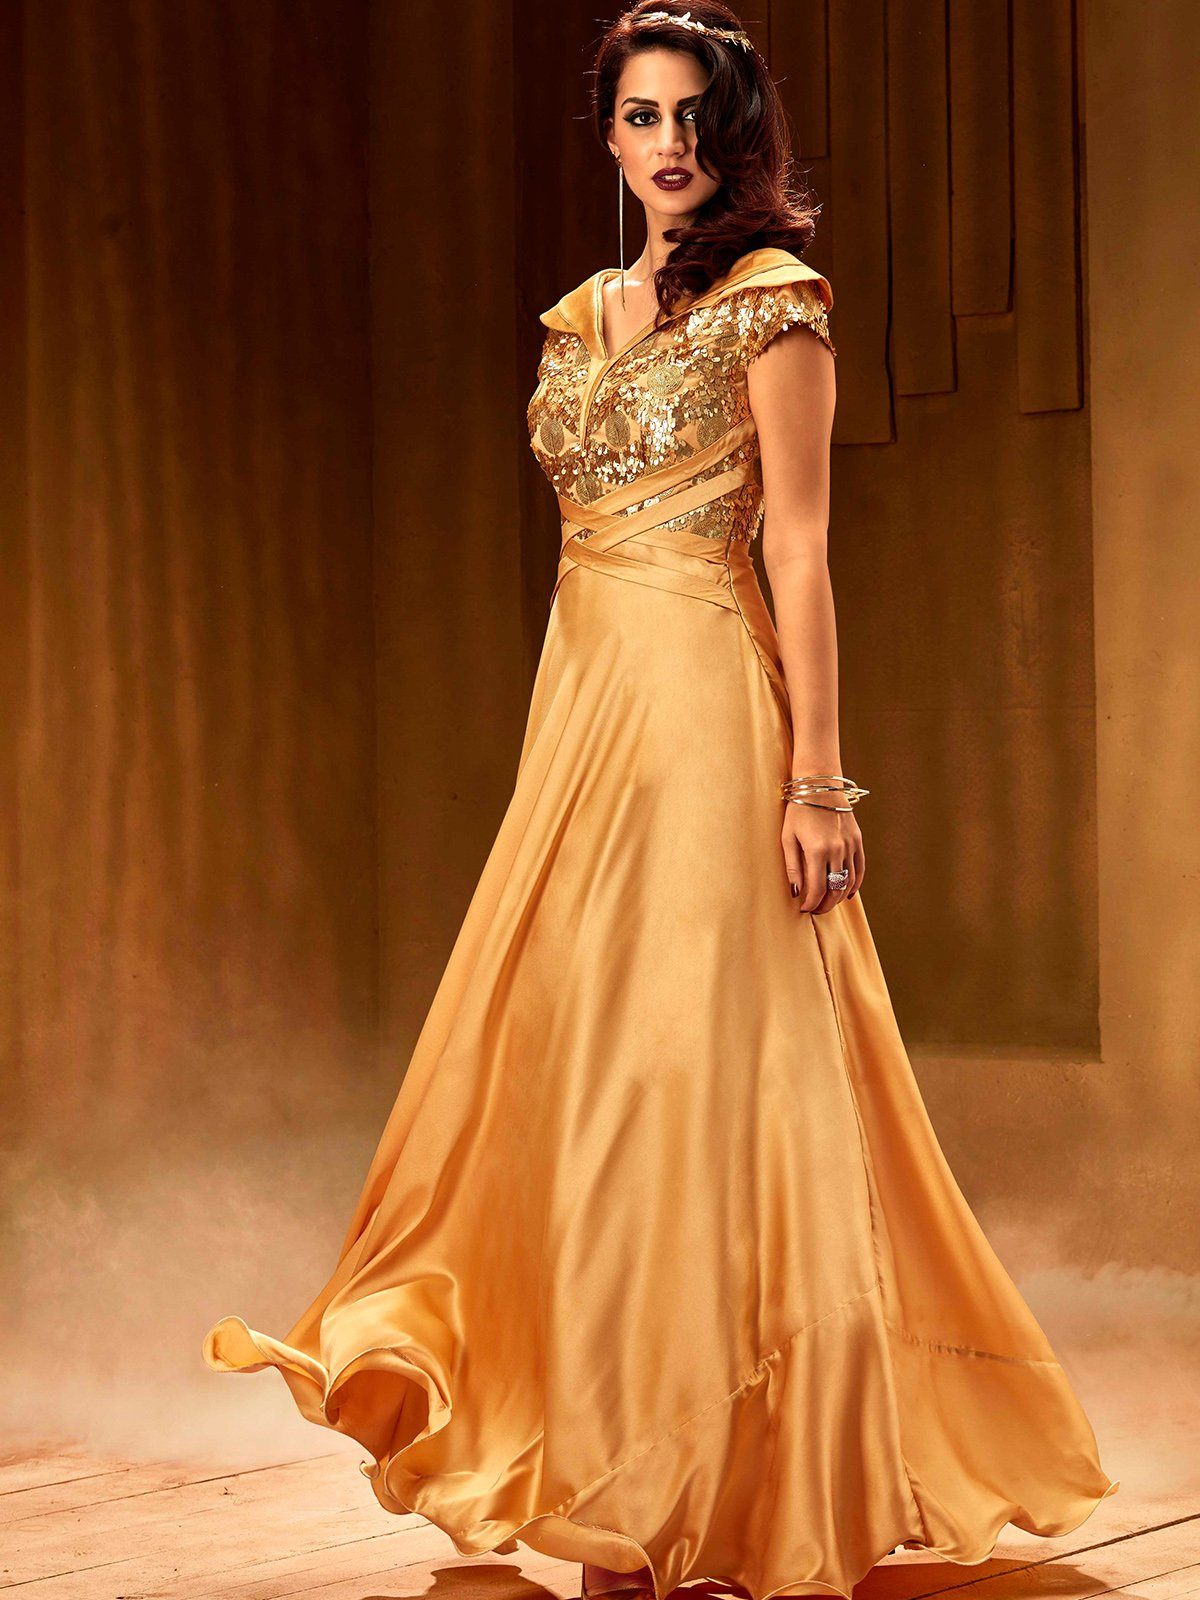 Criss Cross Golden Sea Net Fabric Stitched Embroidered Gown – Sutva